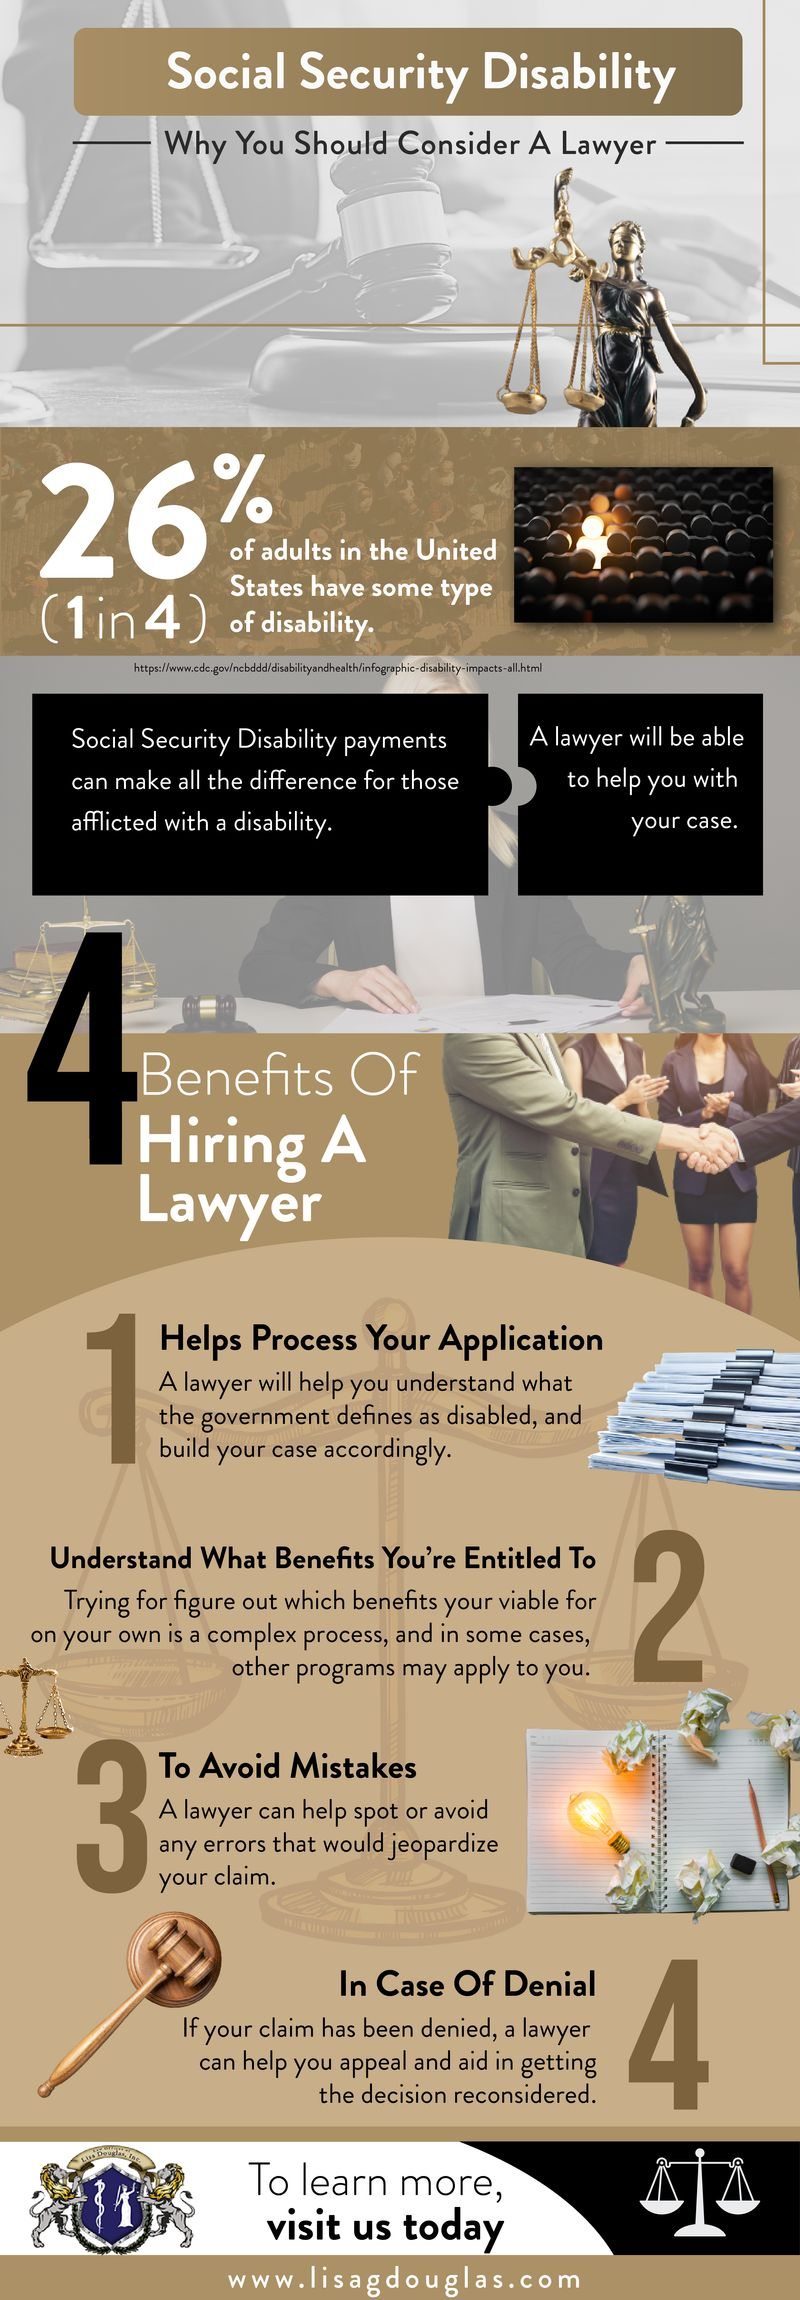 Social Security Disability Why You Should Consider A Lawyer